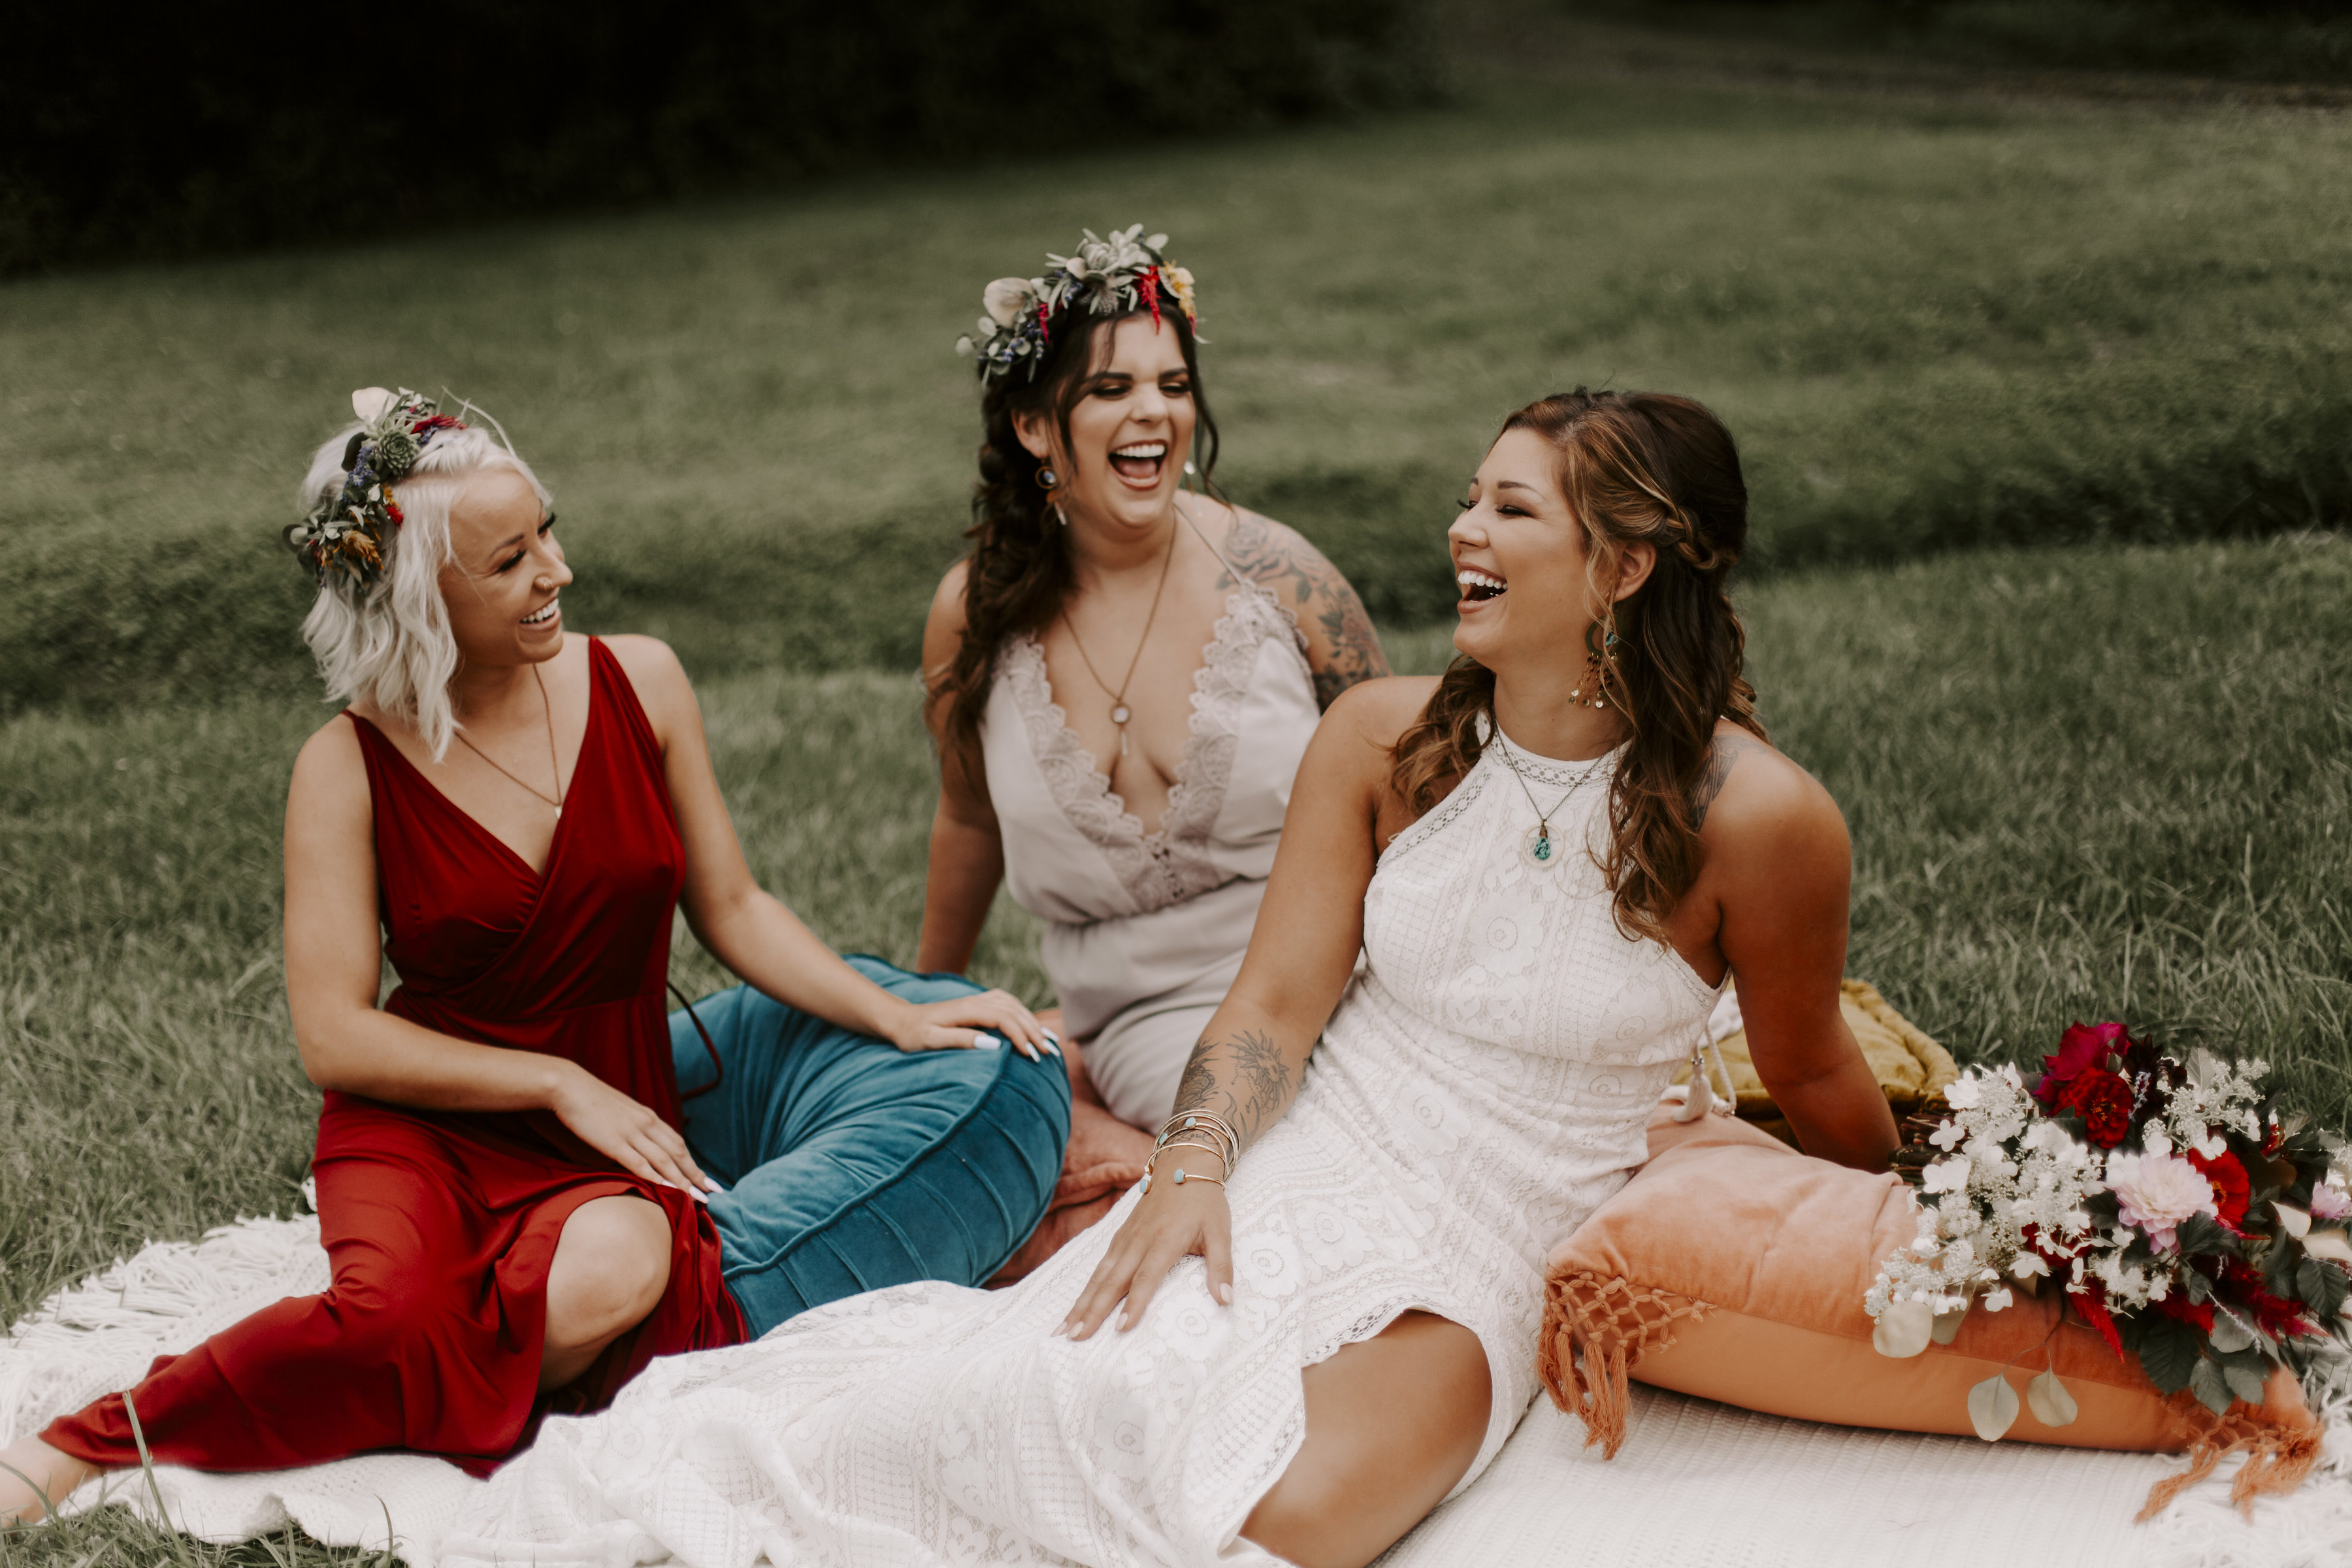 Check Out This Amazing Bob Dylan/Music Festival Inspired Wedding Shoot!